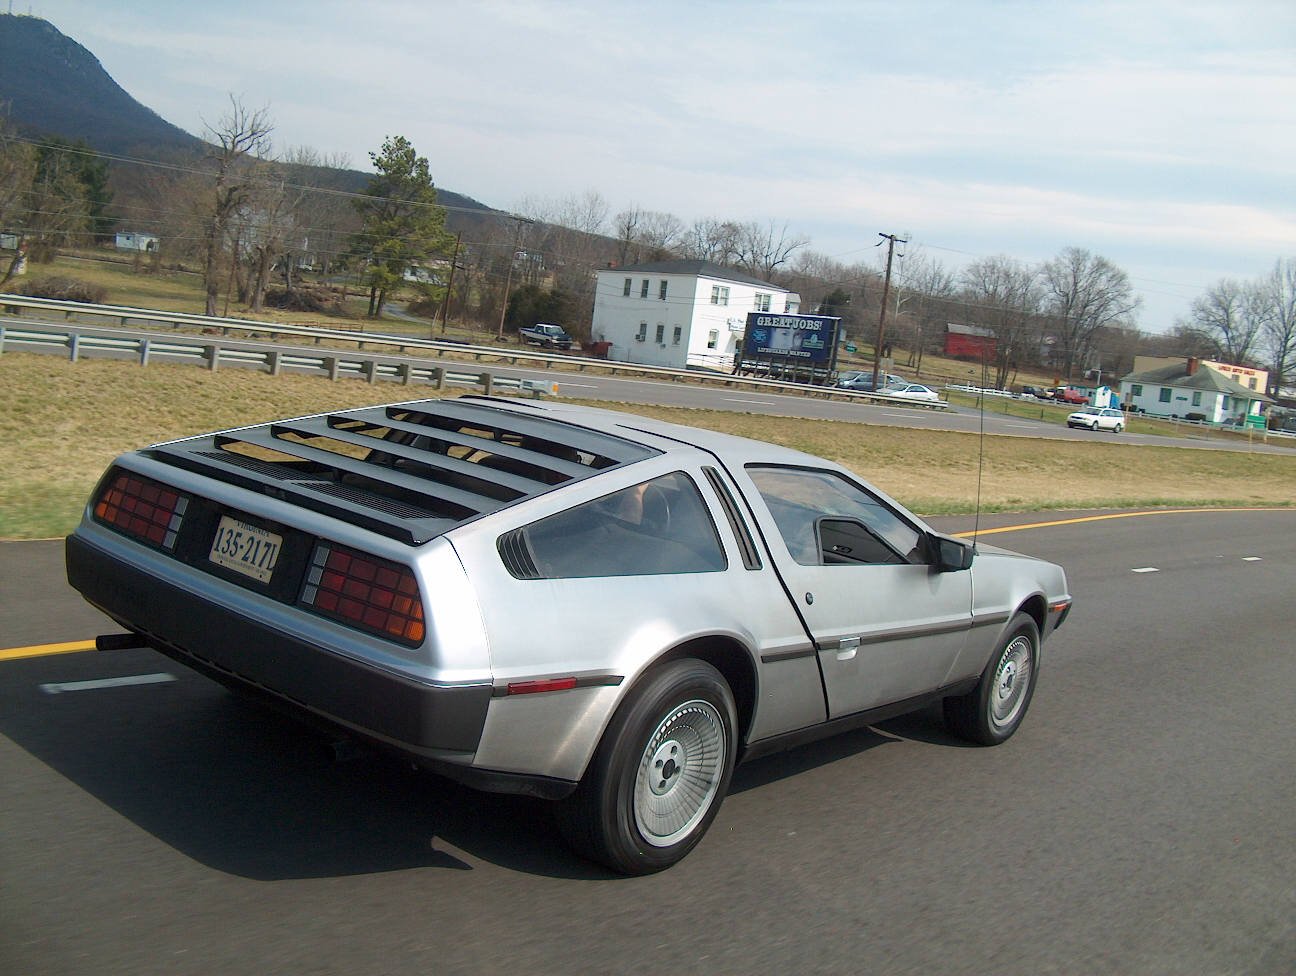 DeLorean - The Back Future